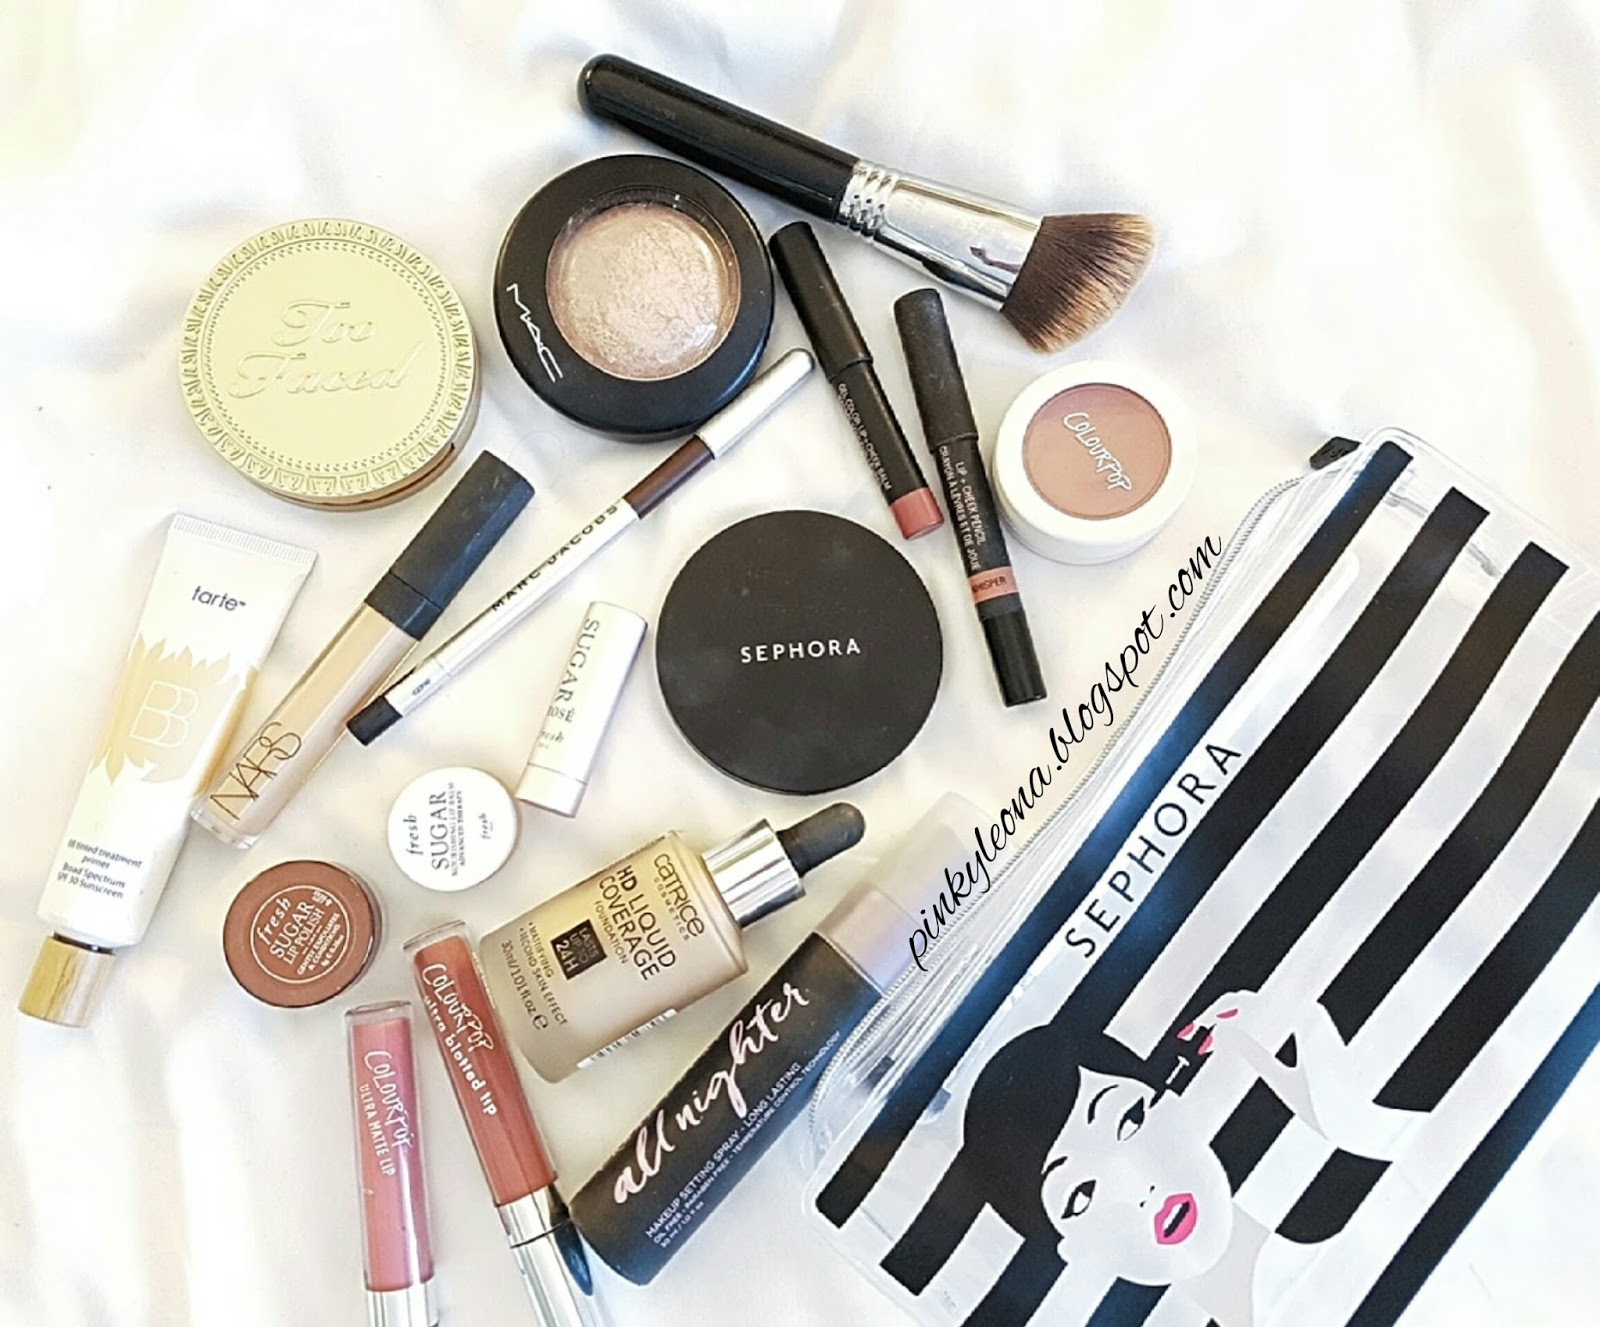 bcf8a7202ddf What's in My Travel Makeup Bag - PINKYLEONA